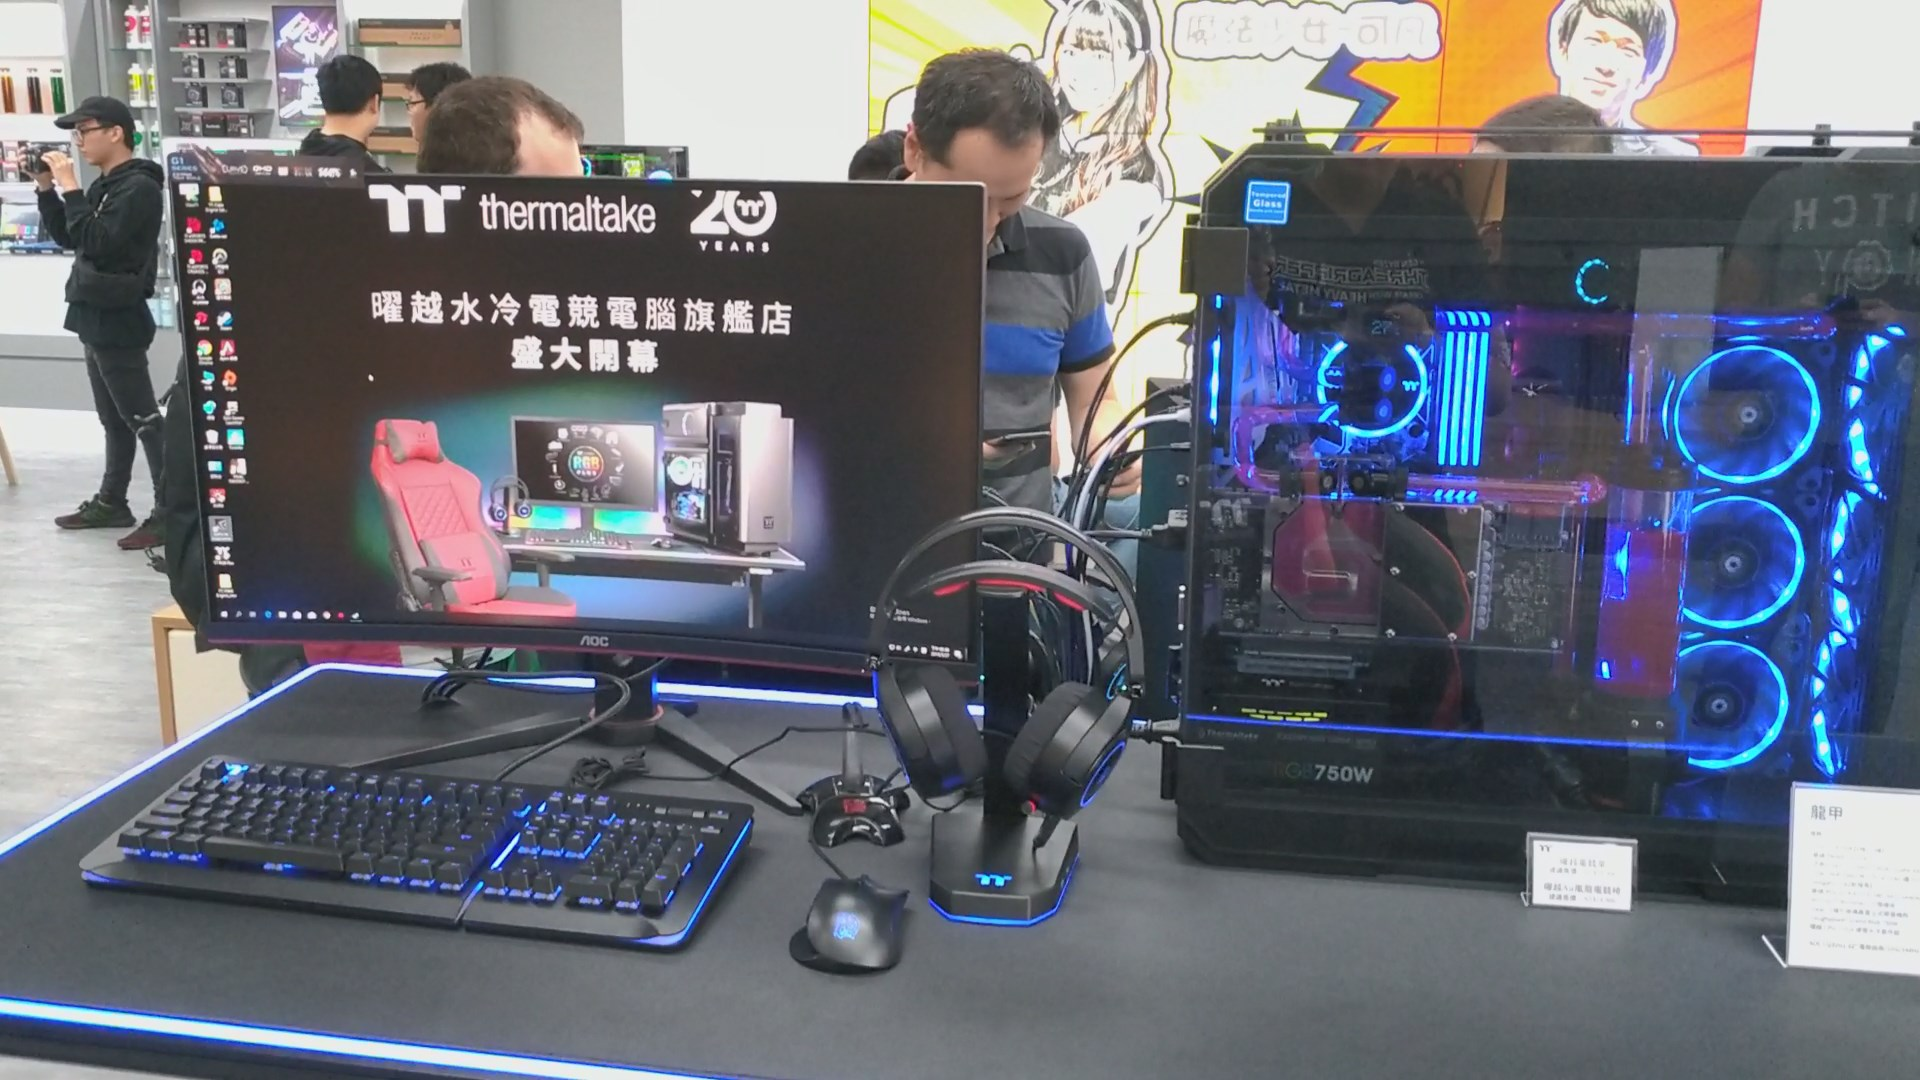 Thermaltake Liquid Cooling Gaming System Flagship Store - Computex 2019 19